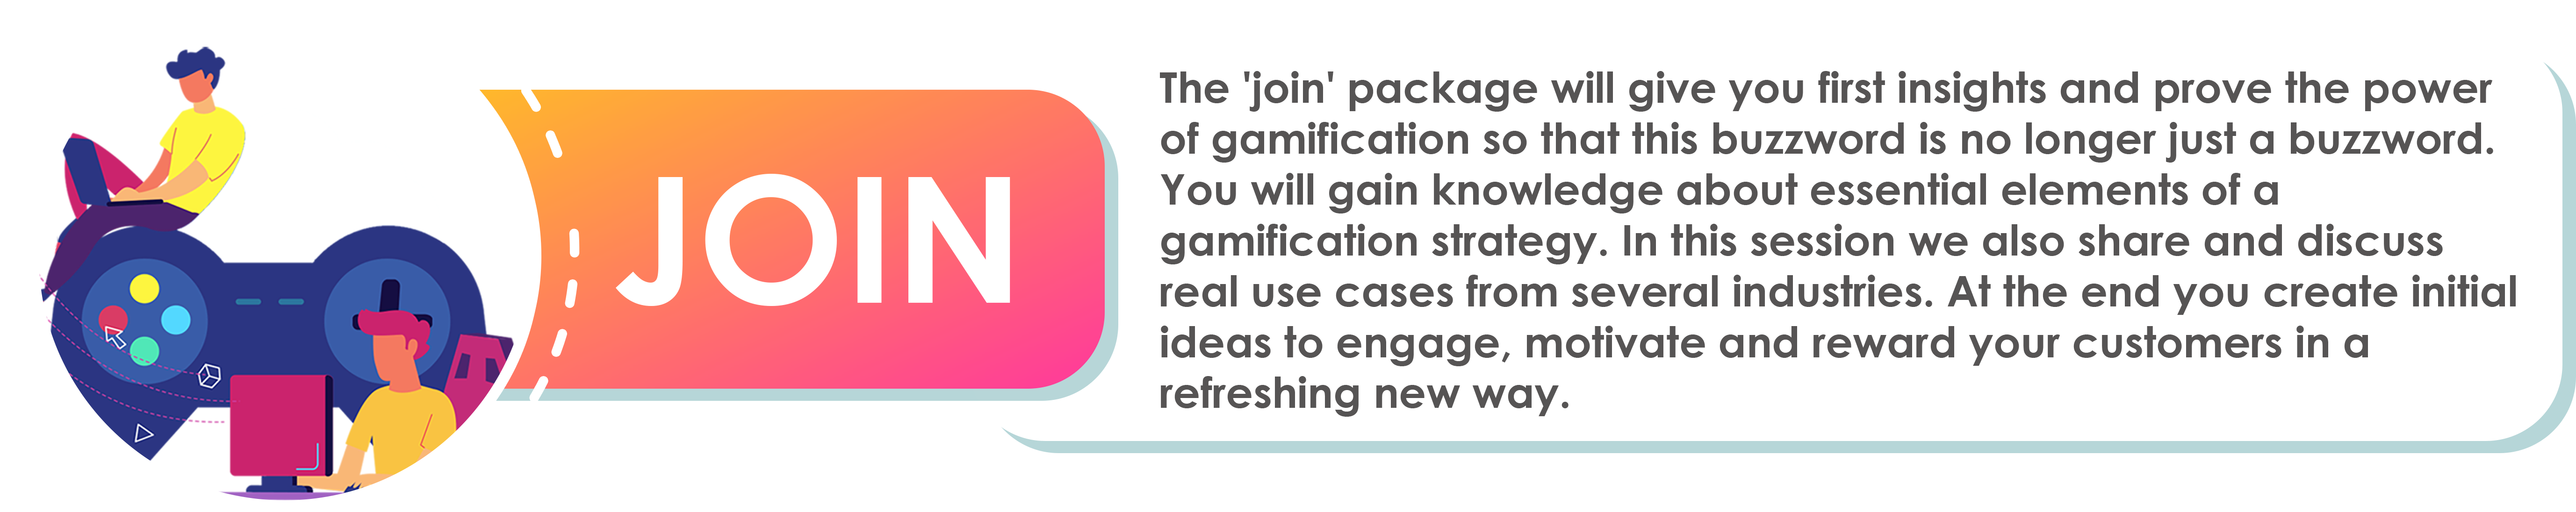 Gamification - Join